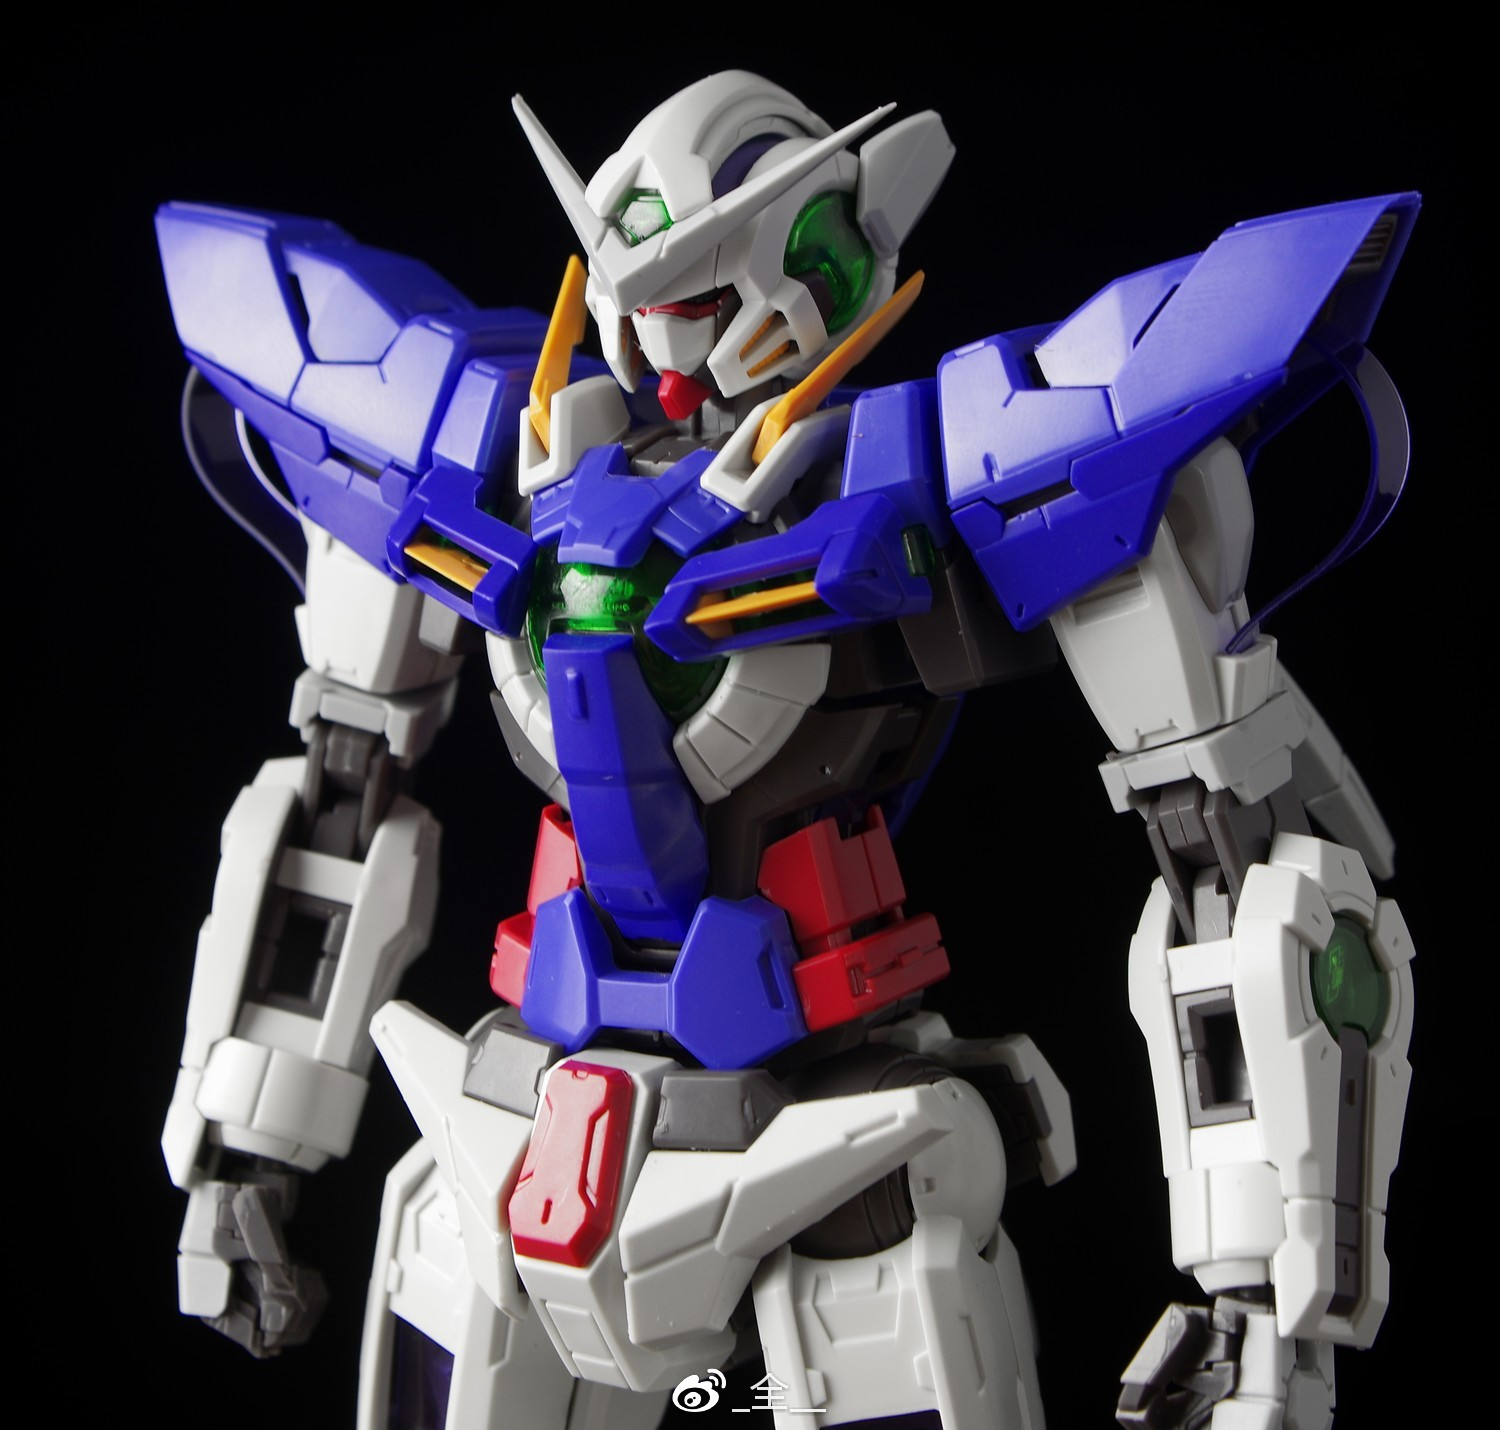 S269_mg_exia_led_hobby_star_inask_036.jpg